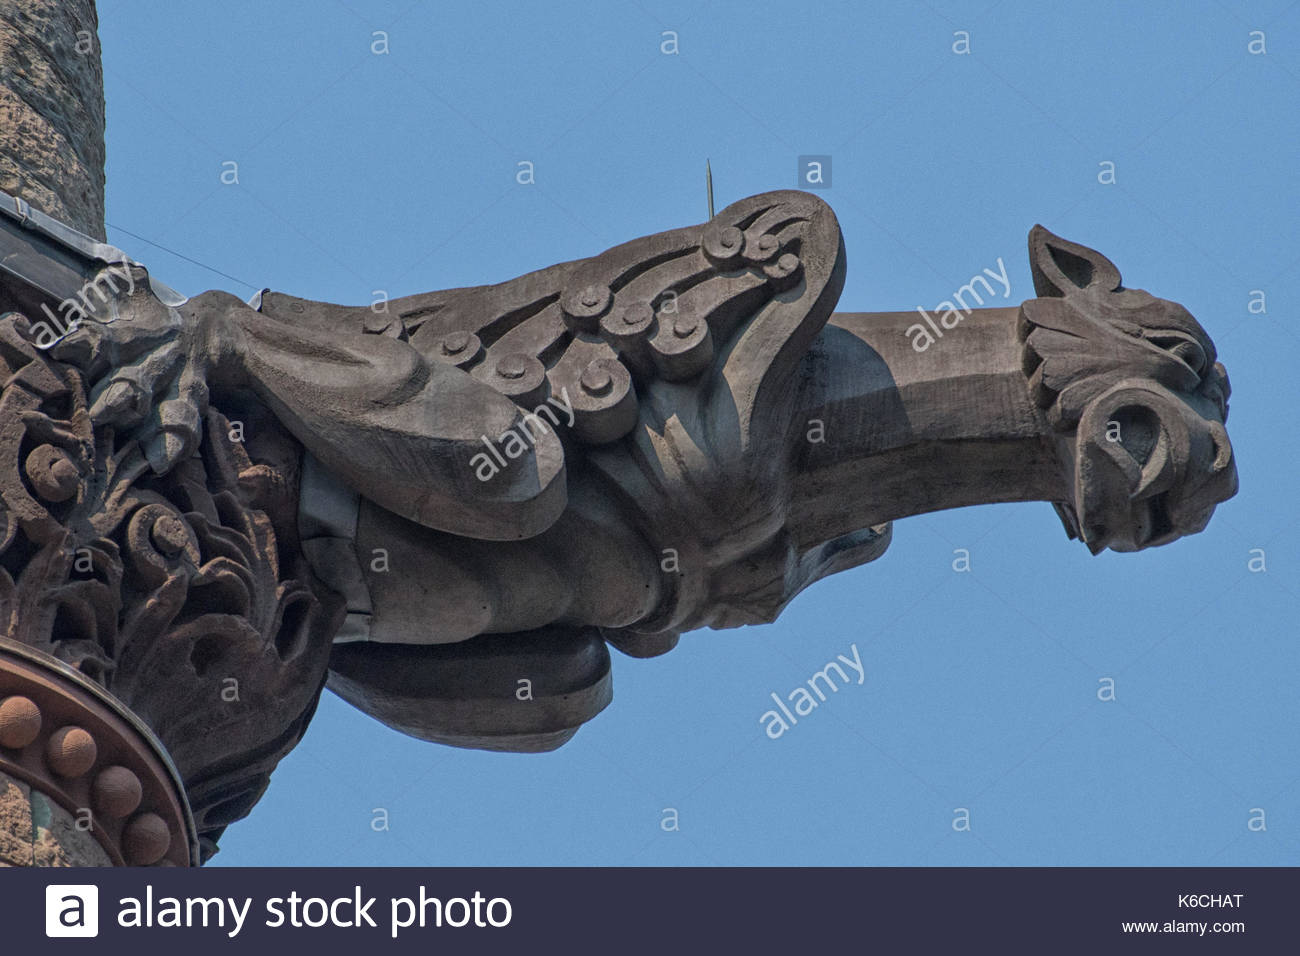 Gargoyle in the clock tower of the Old City Hall building. The Richardsonian Romanesque Revival landmark is a tourist attraction in the Canadian city - Stock Image